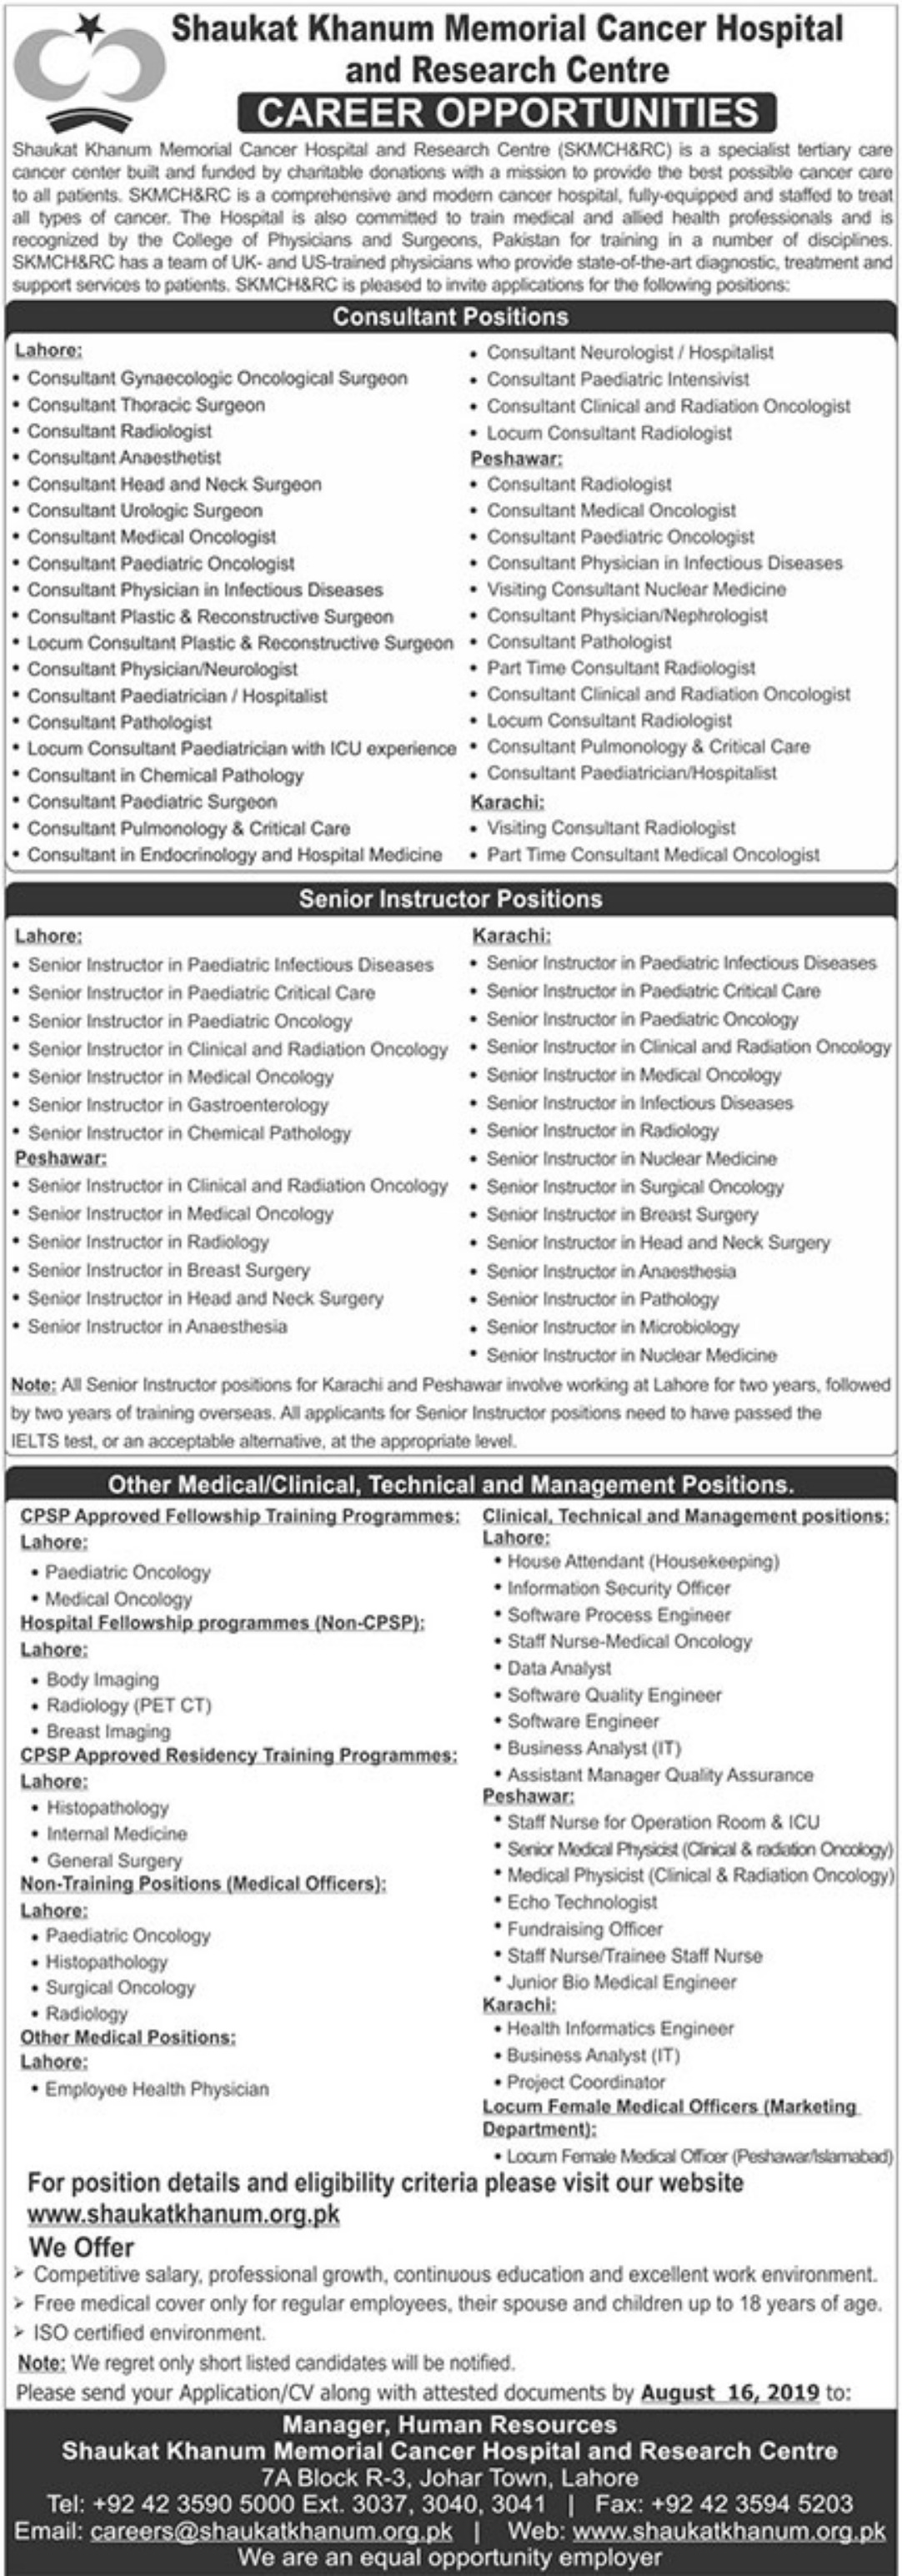 Shaukat Khanum Memorial Cancer Hospital & Research Centre Jobs 2019